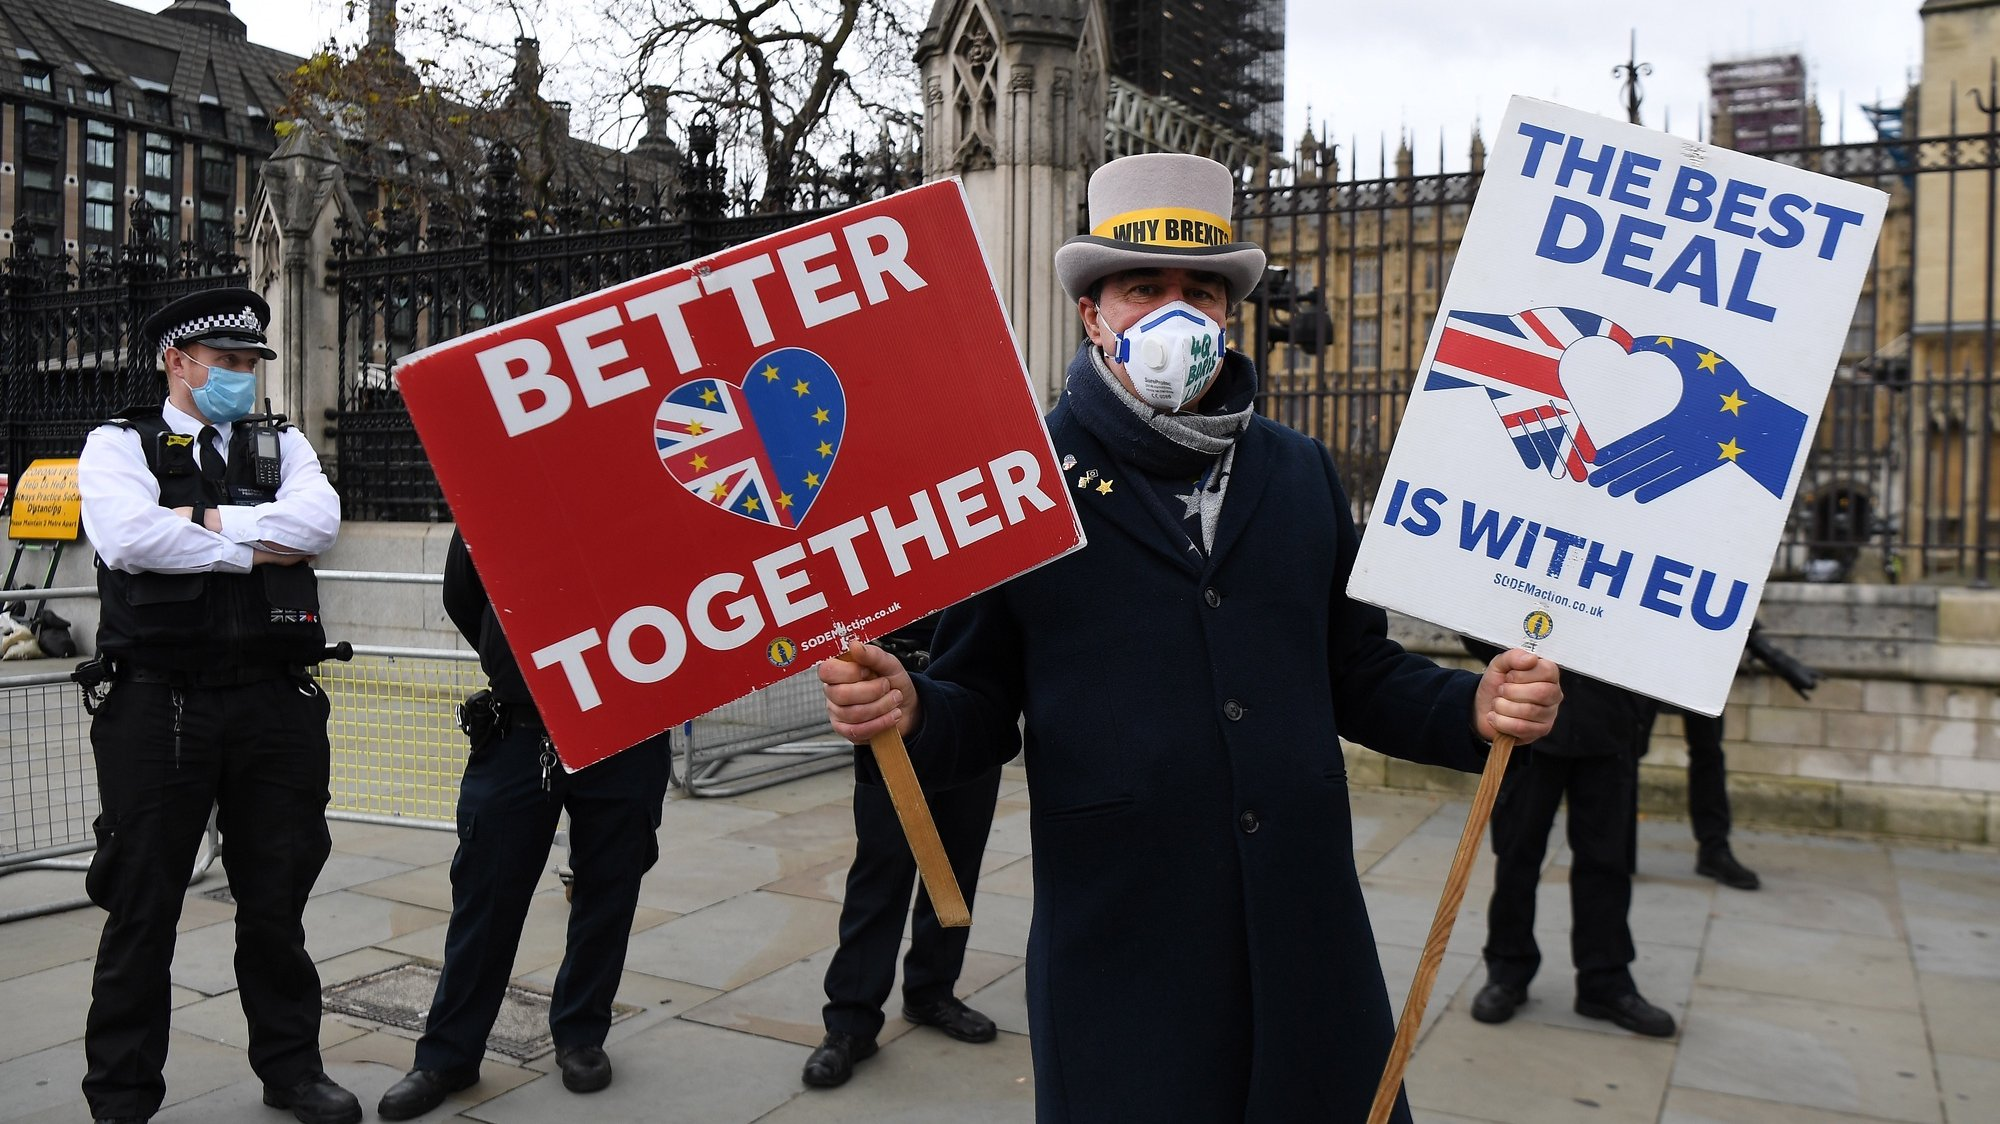 epa08813272 A pro EU demonstrator protests outside parliament during Brexit talks in London, Britain, 11 November 2020. Brexit negotiations are continuing in London ahead of a looming deadline.  EPA/ANDY RAIN